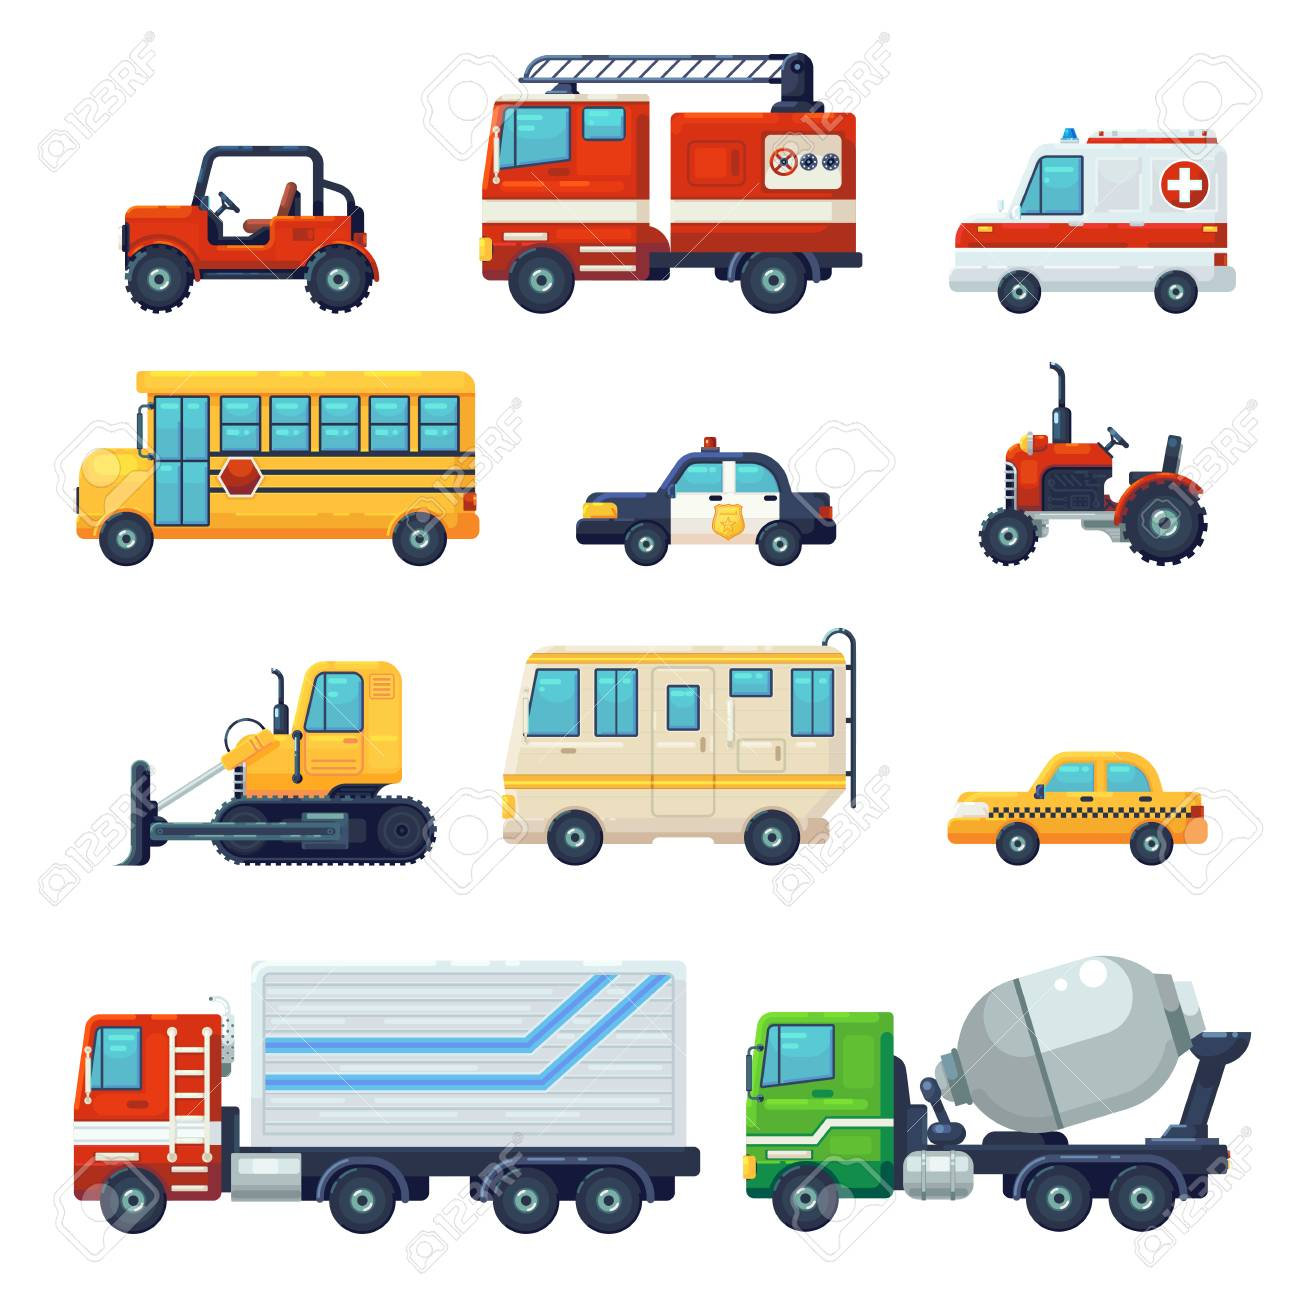 Contains such as Heavy industrial vehicle car, tractor, police ambulance school bus, Fire fighting car . Can be used for websites, infographics, mobile apps. . Flat cartoon Vector Illustration Graphic Design - 120737486